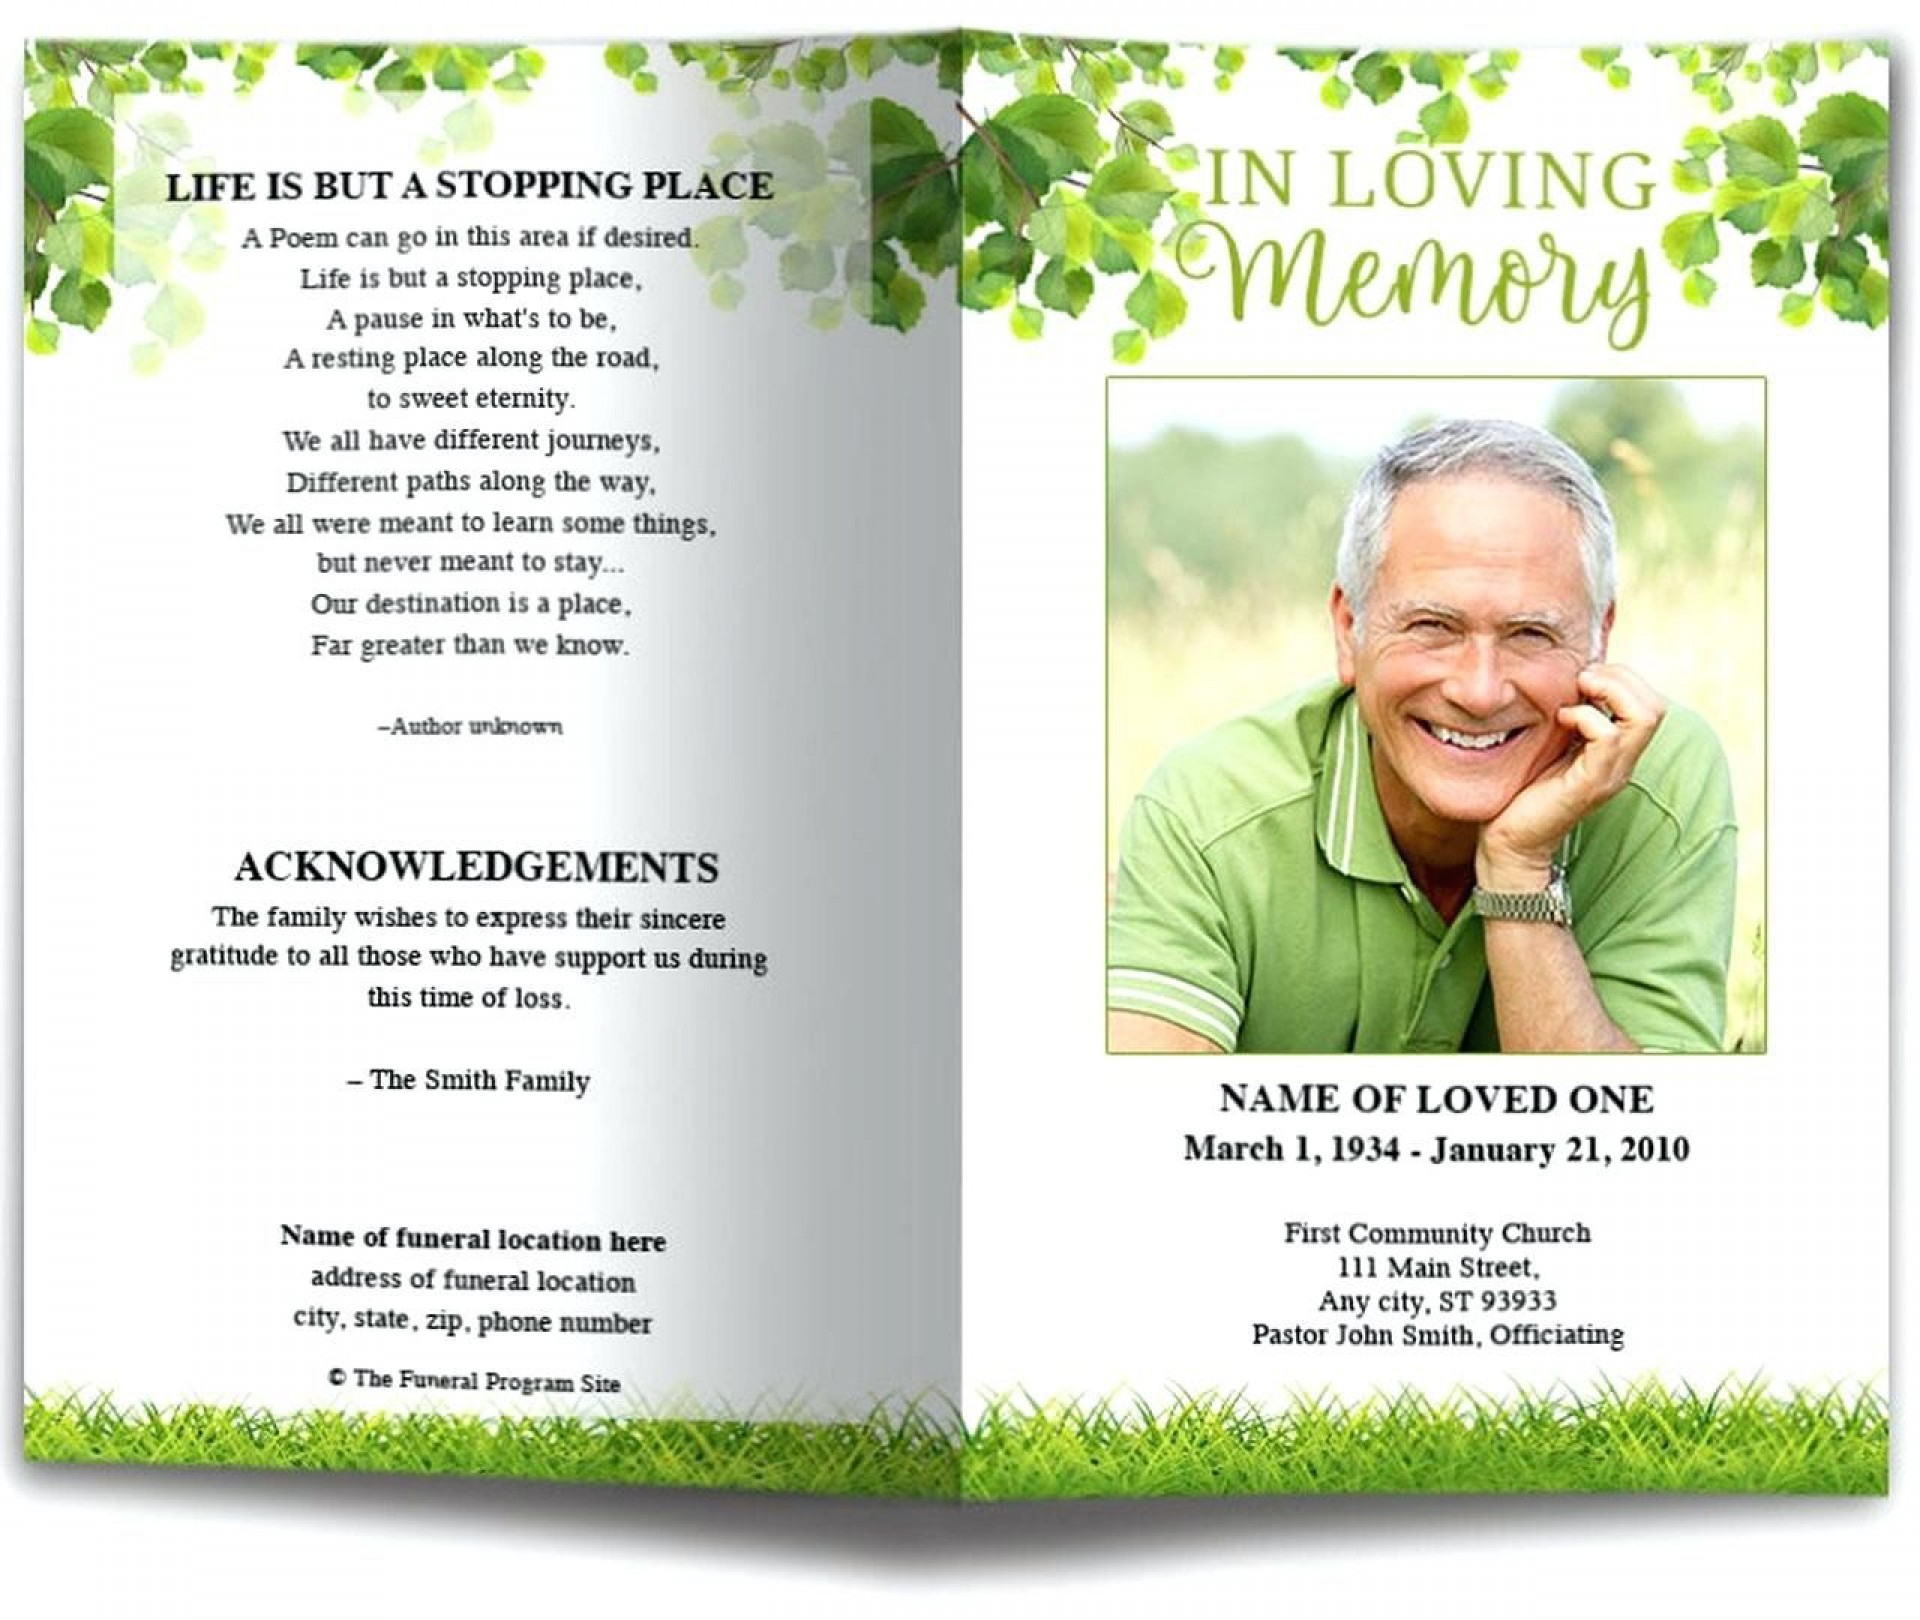 009 Marvelou Funeral Program Template Free Example  Online Printable Download Publisher1920